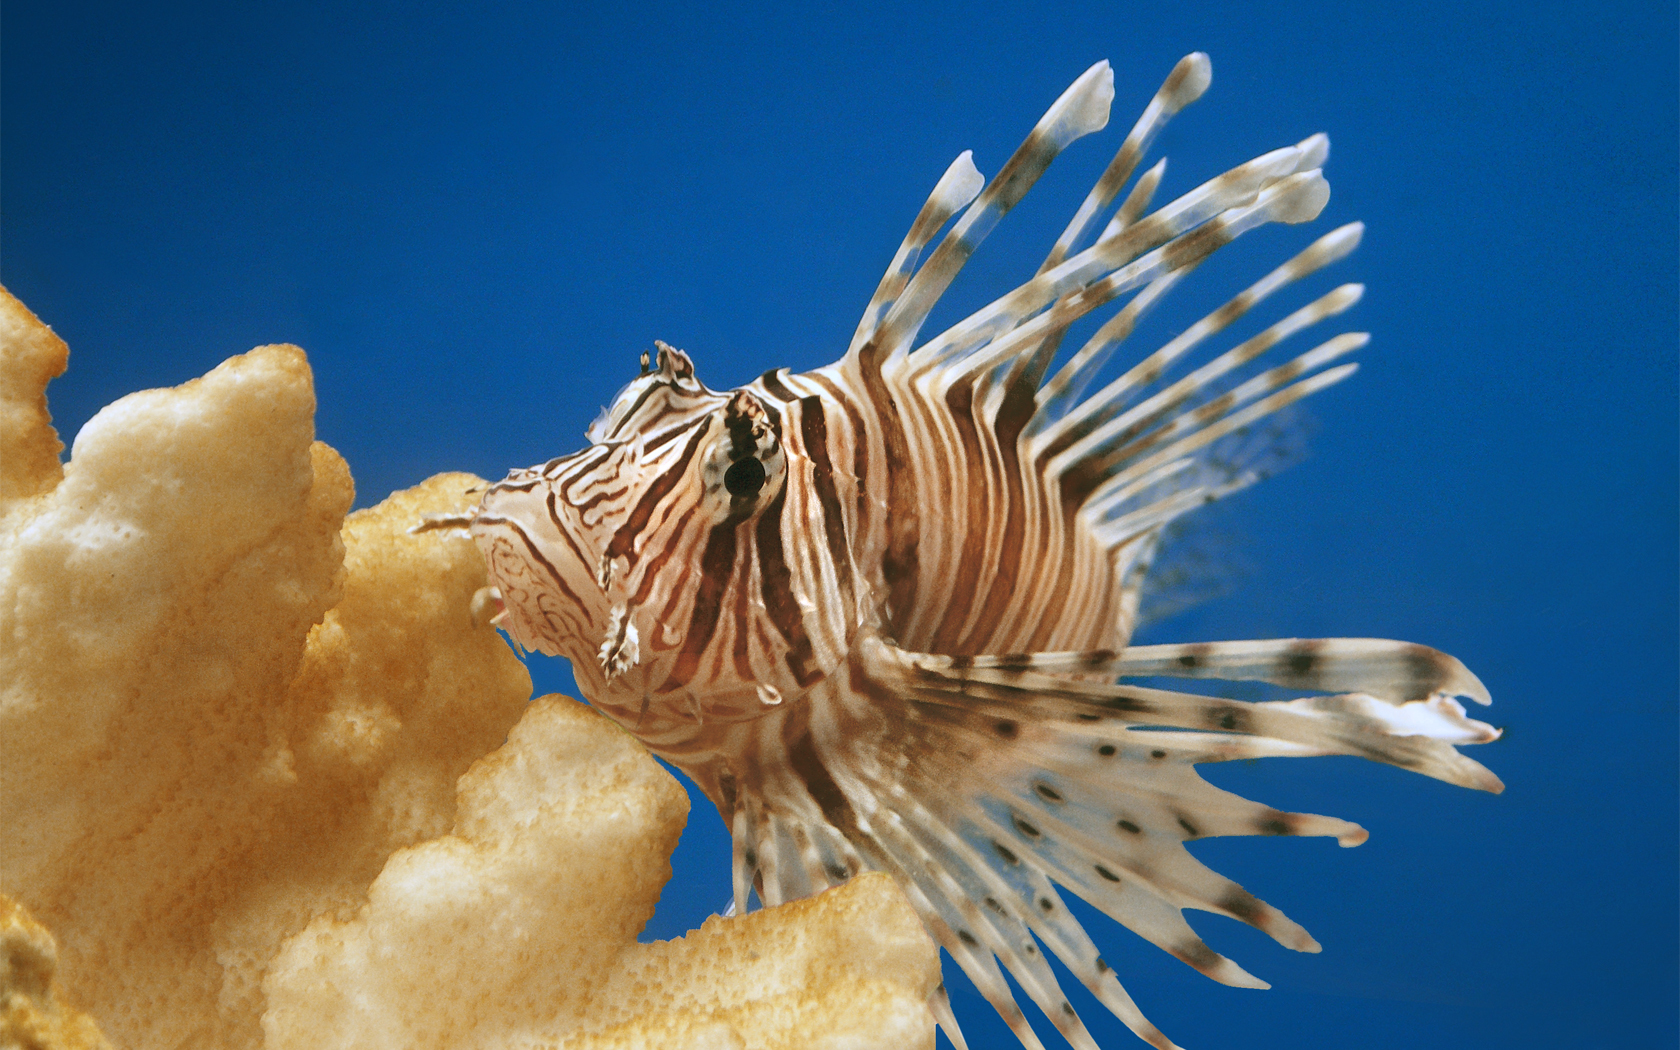 Animals fish lionfish ocean